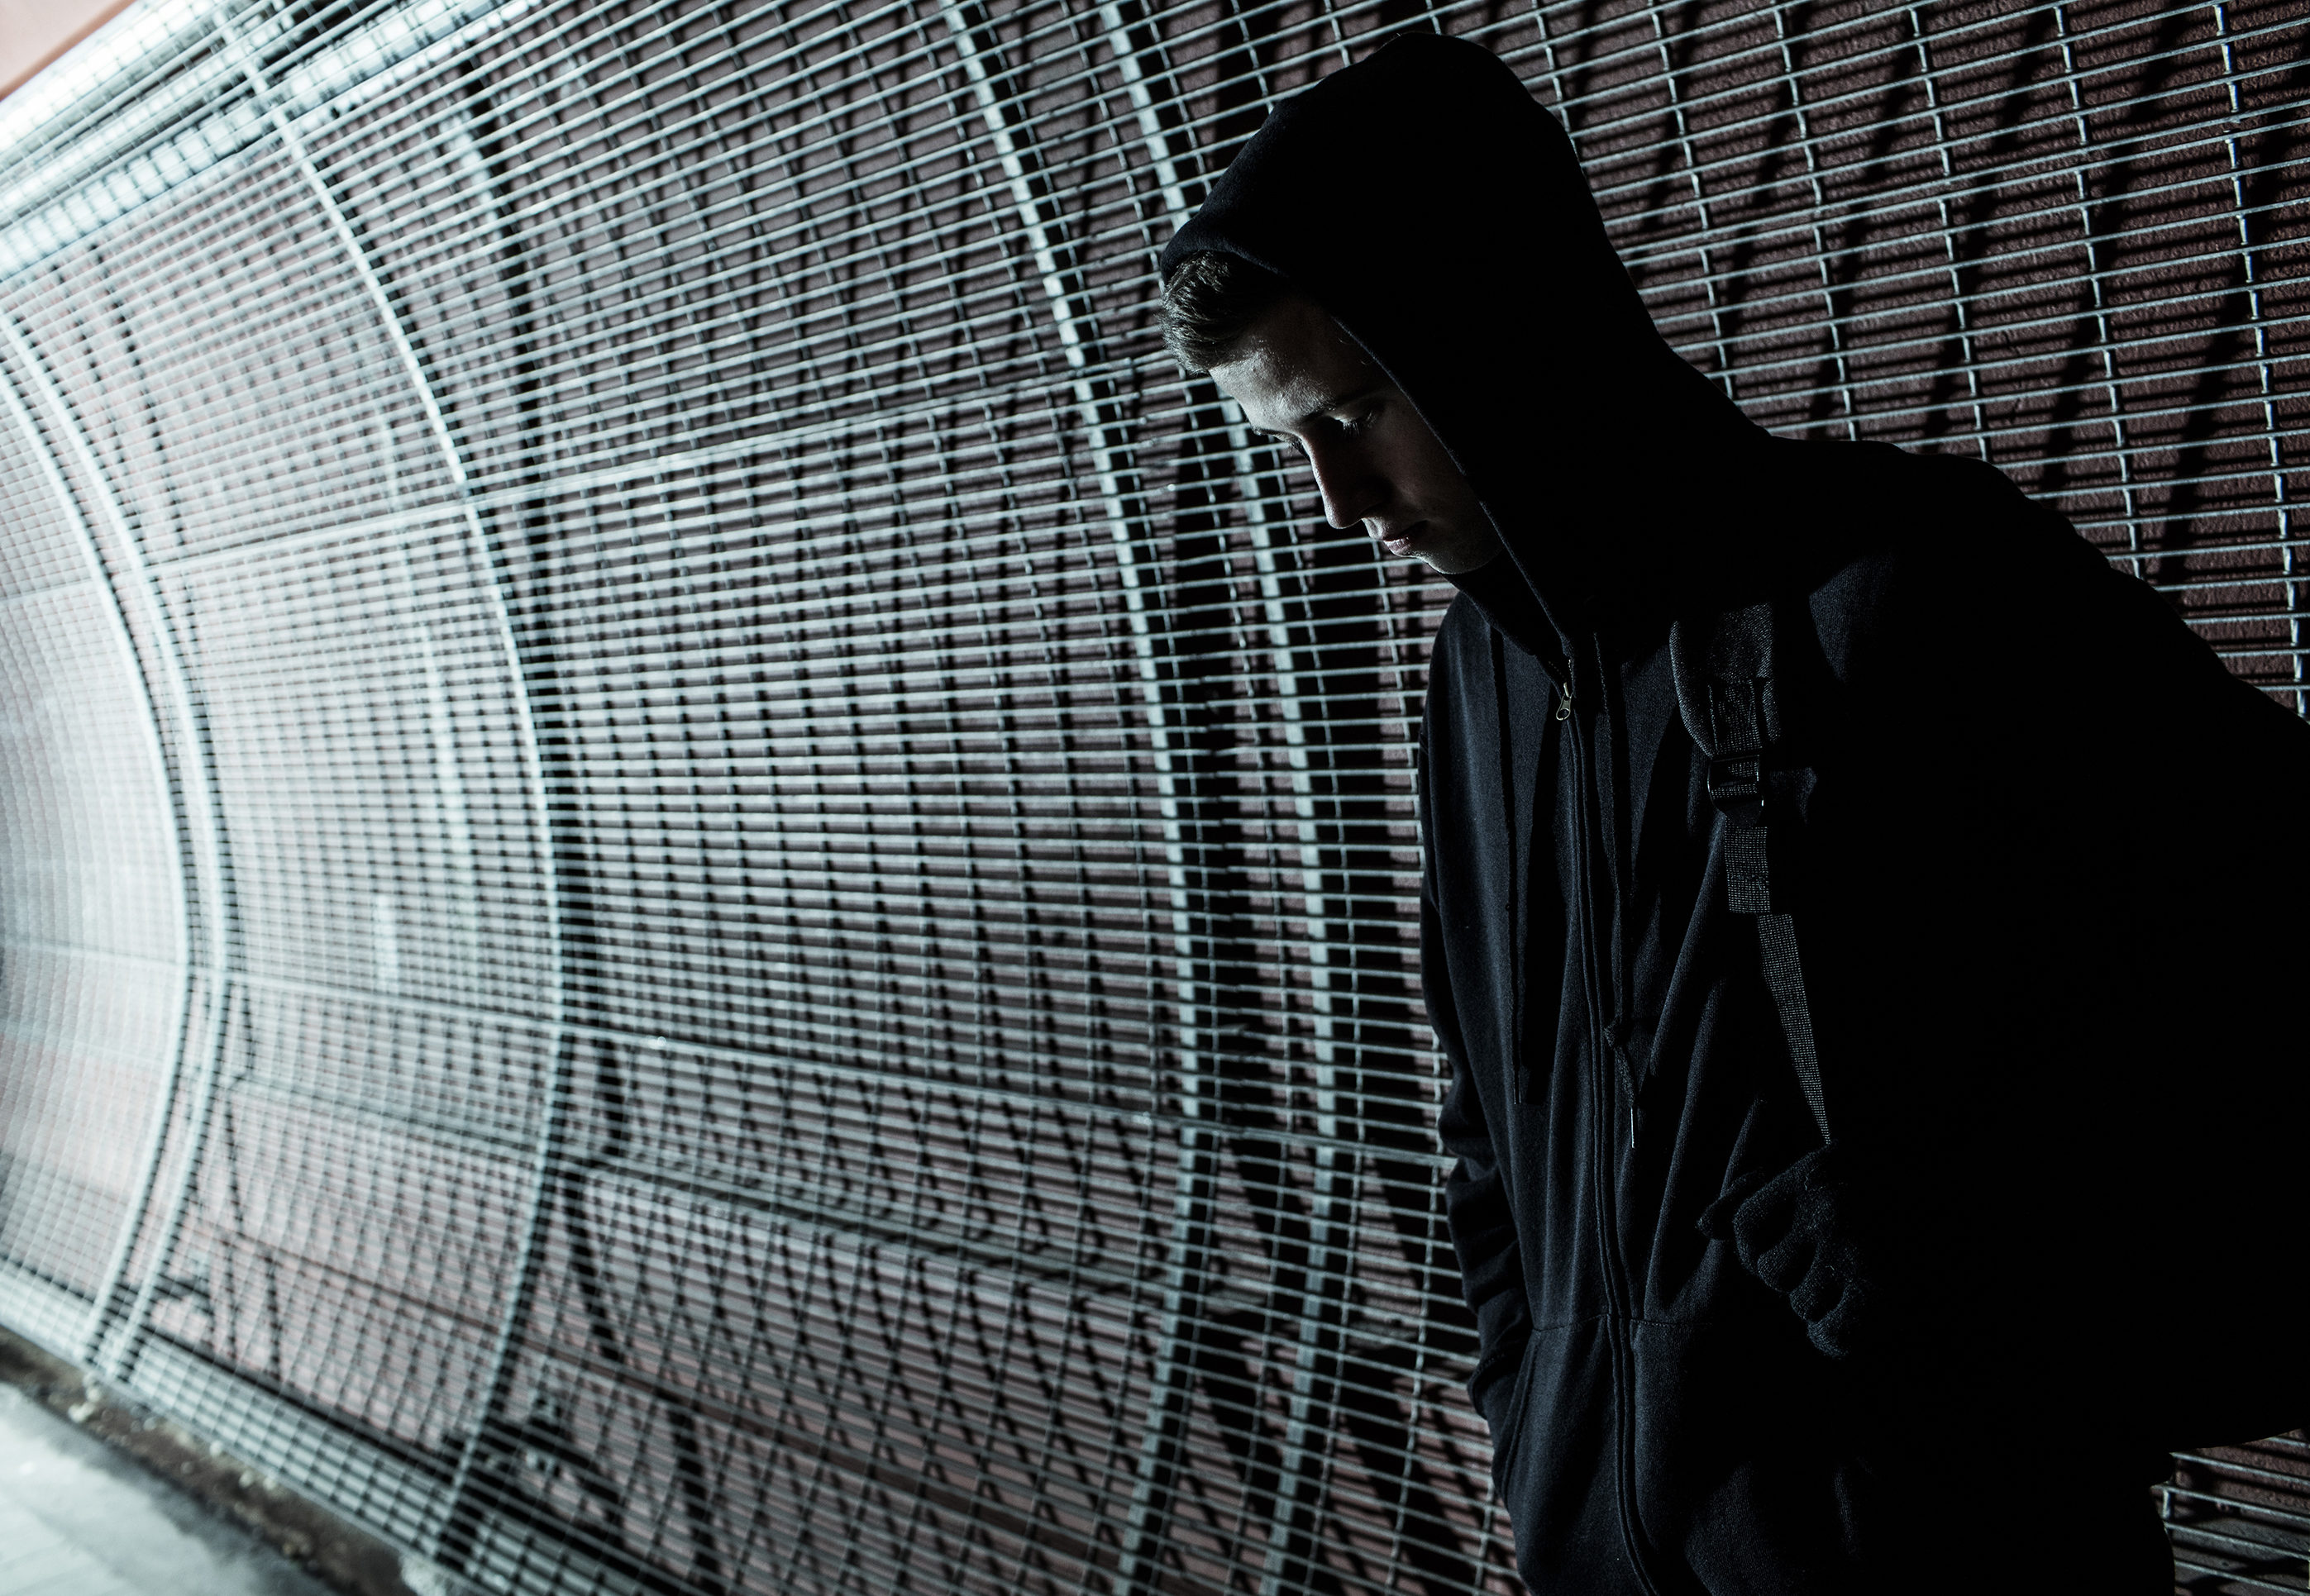 Best Alan Walker Wallpapers Image HD Picturez 2794x1931